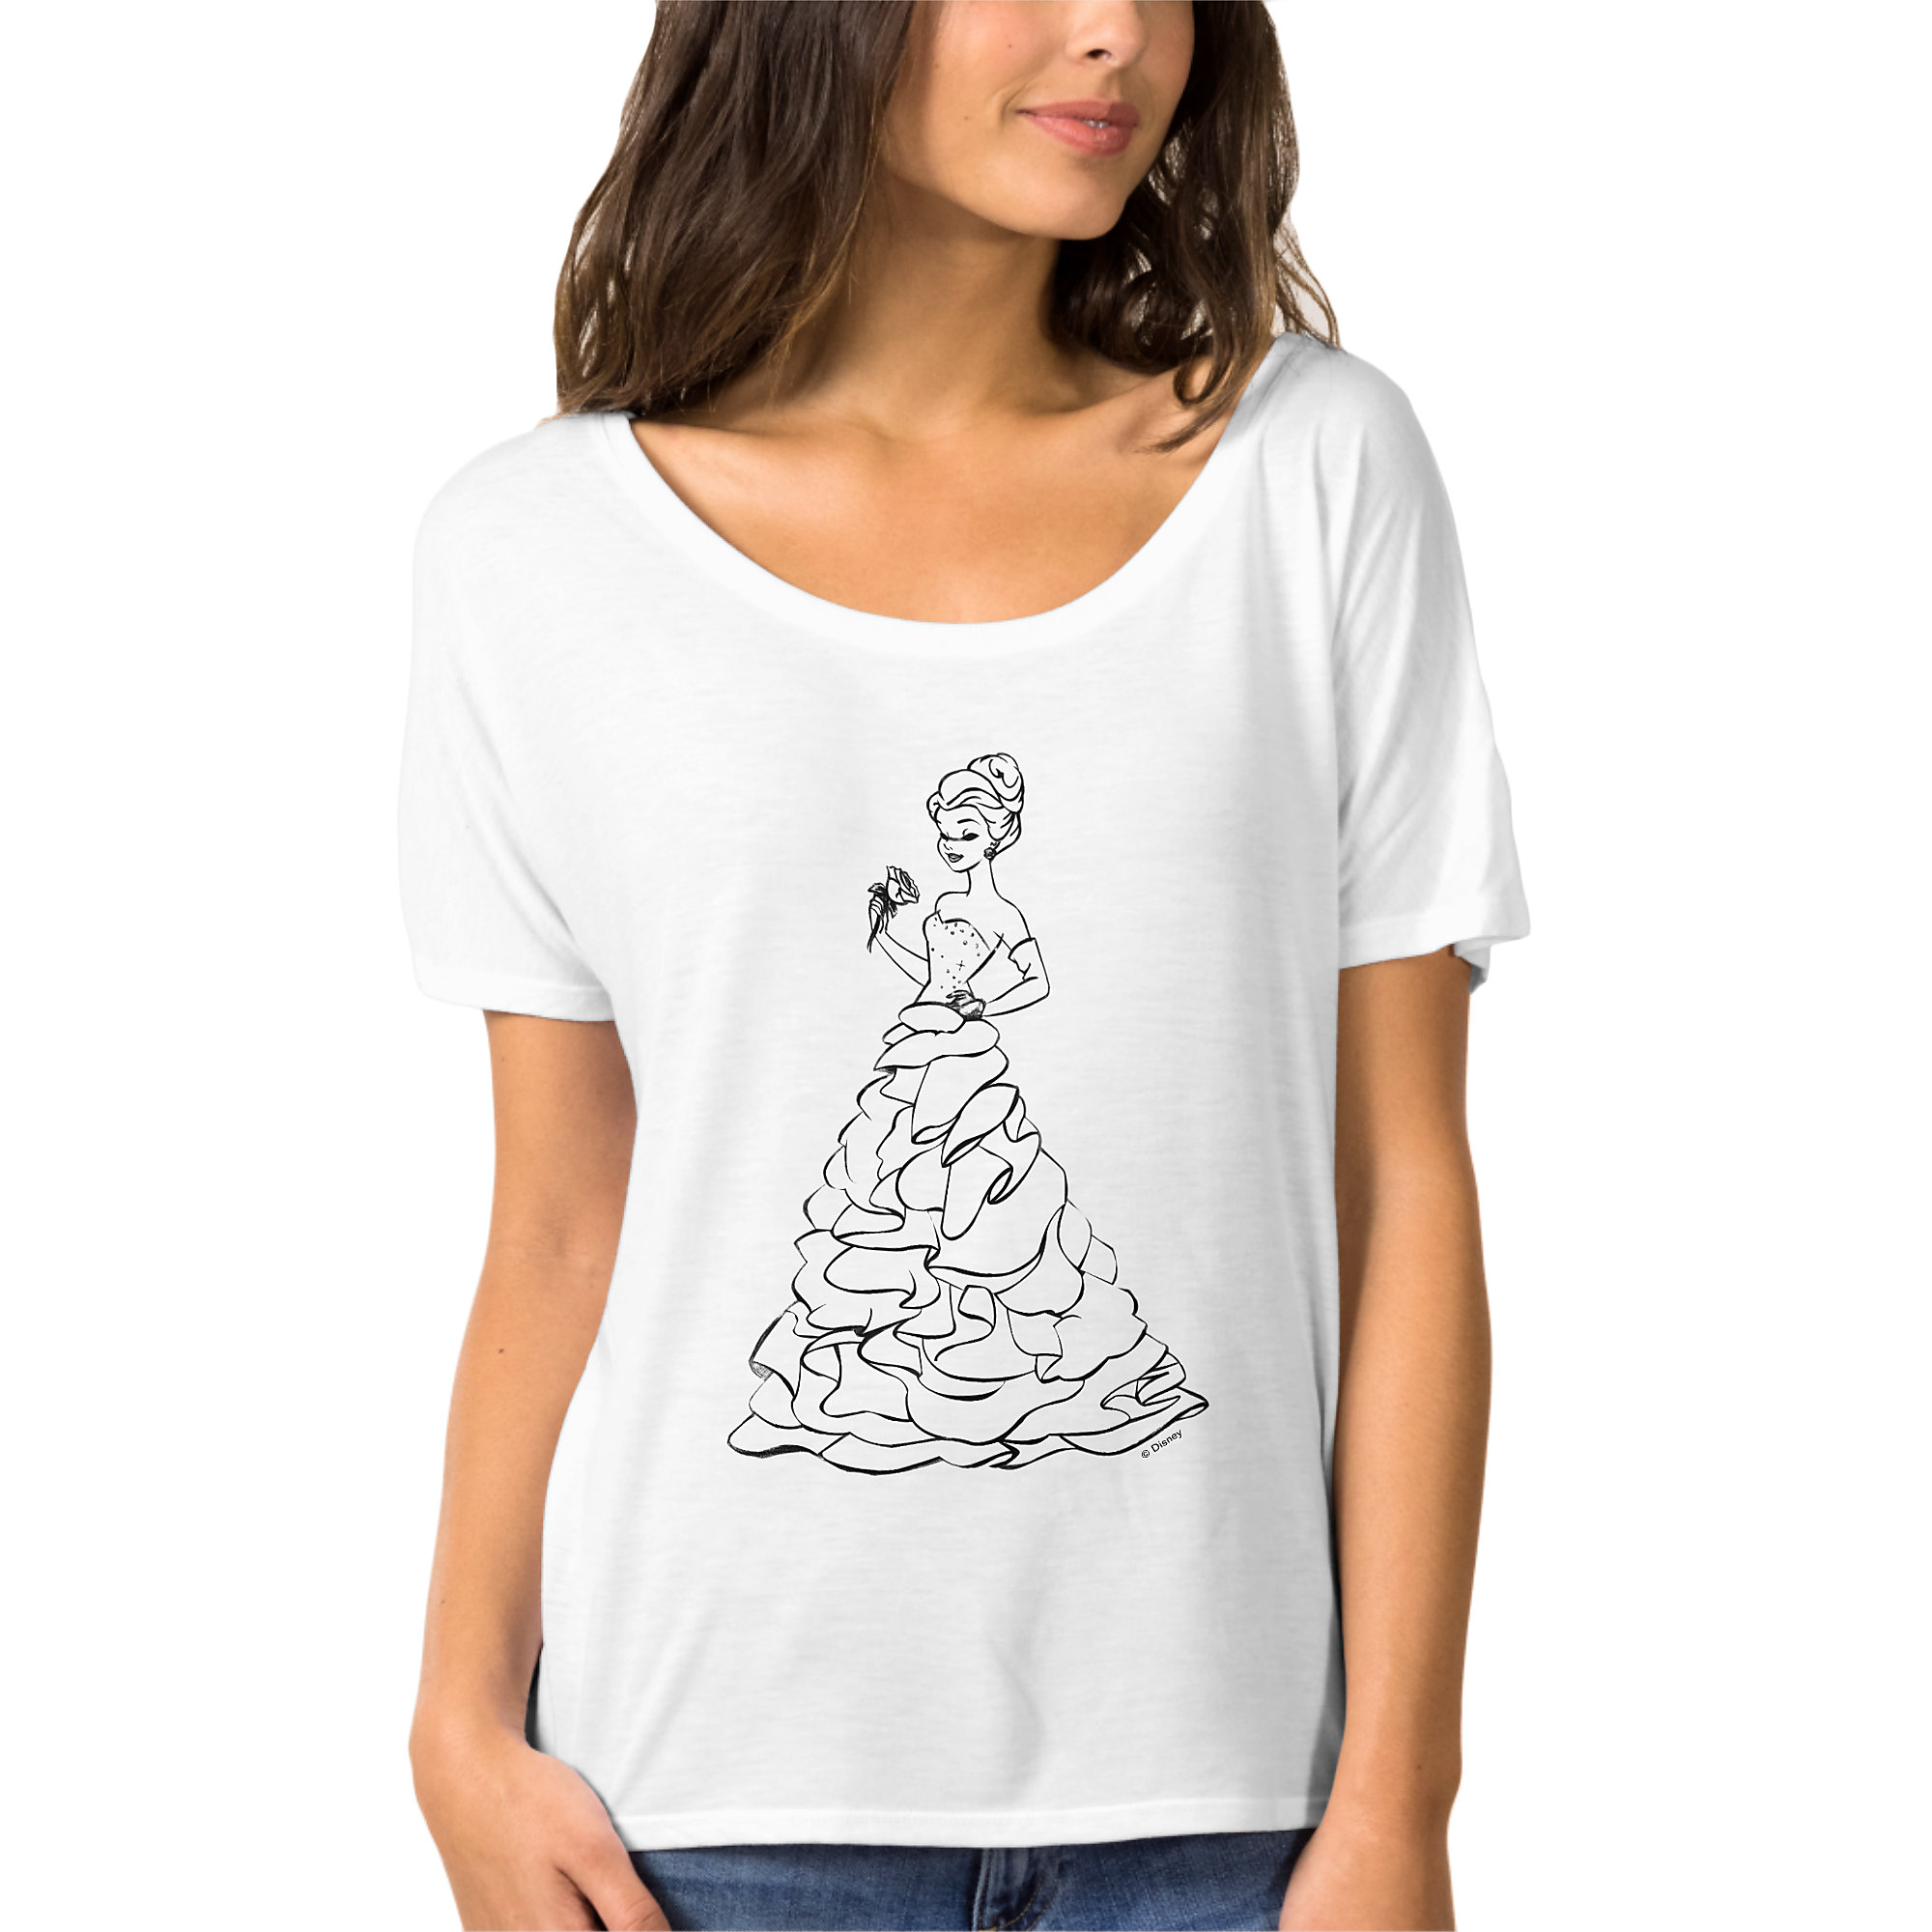 Belle T-Shirt for Women - Art of Princess Designer Collection